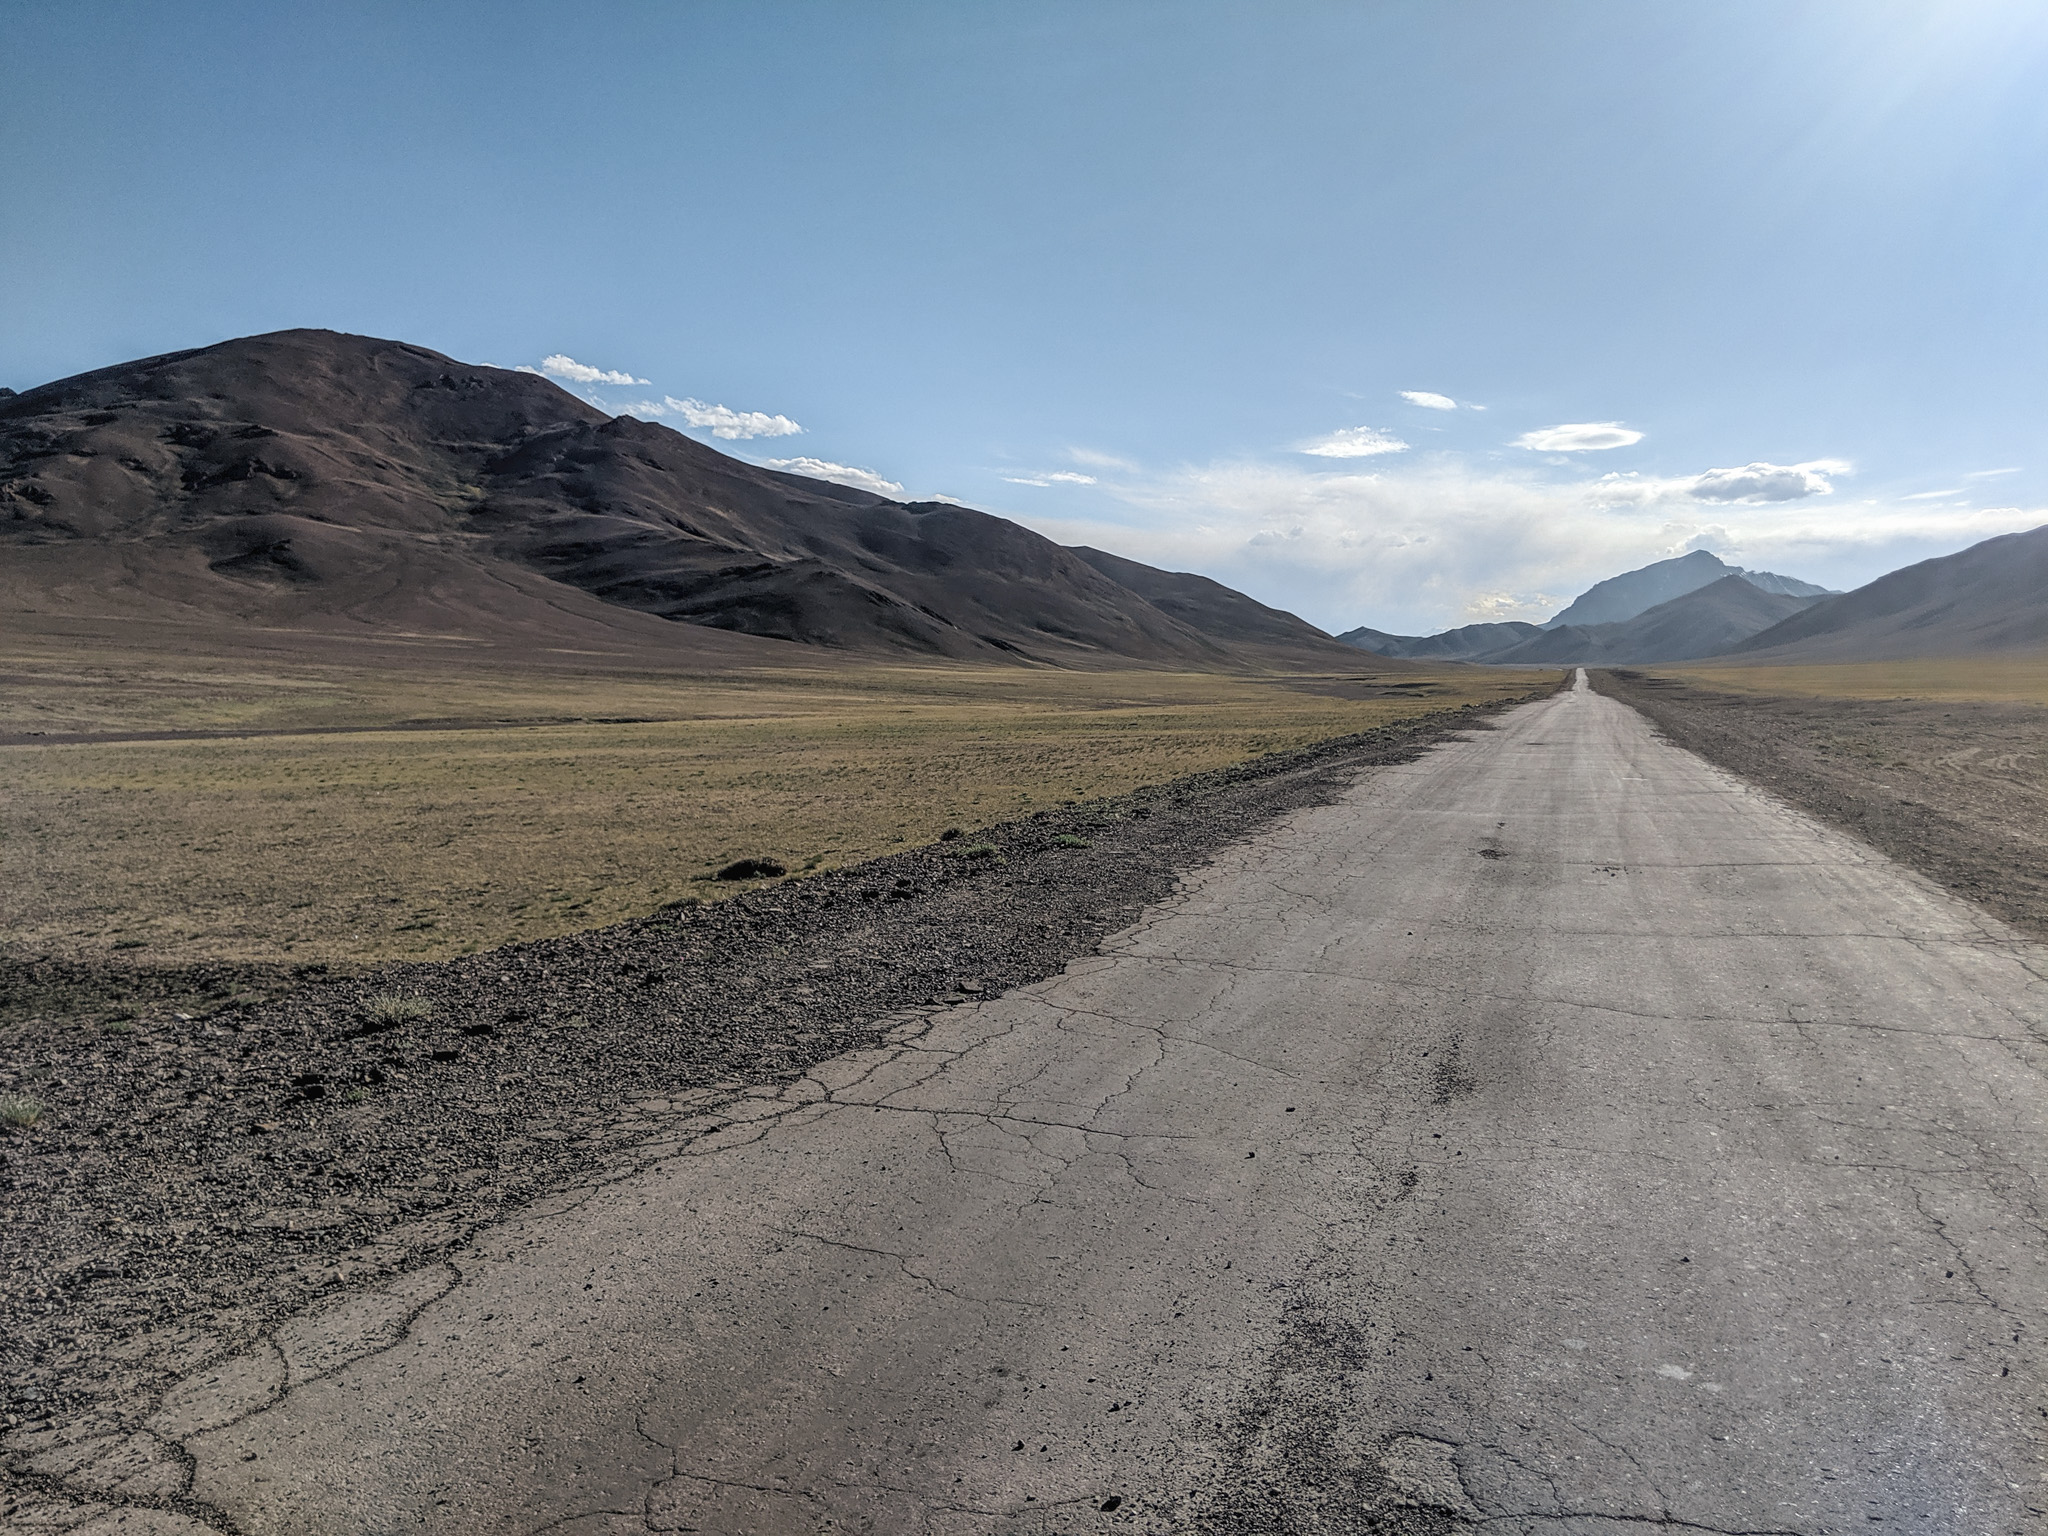 Somewhere along the Pamir Highway in Tajikistan